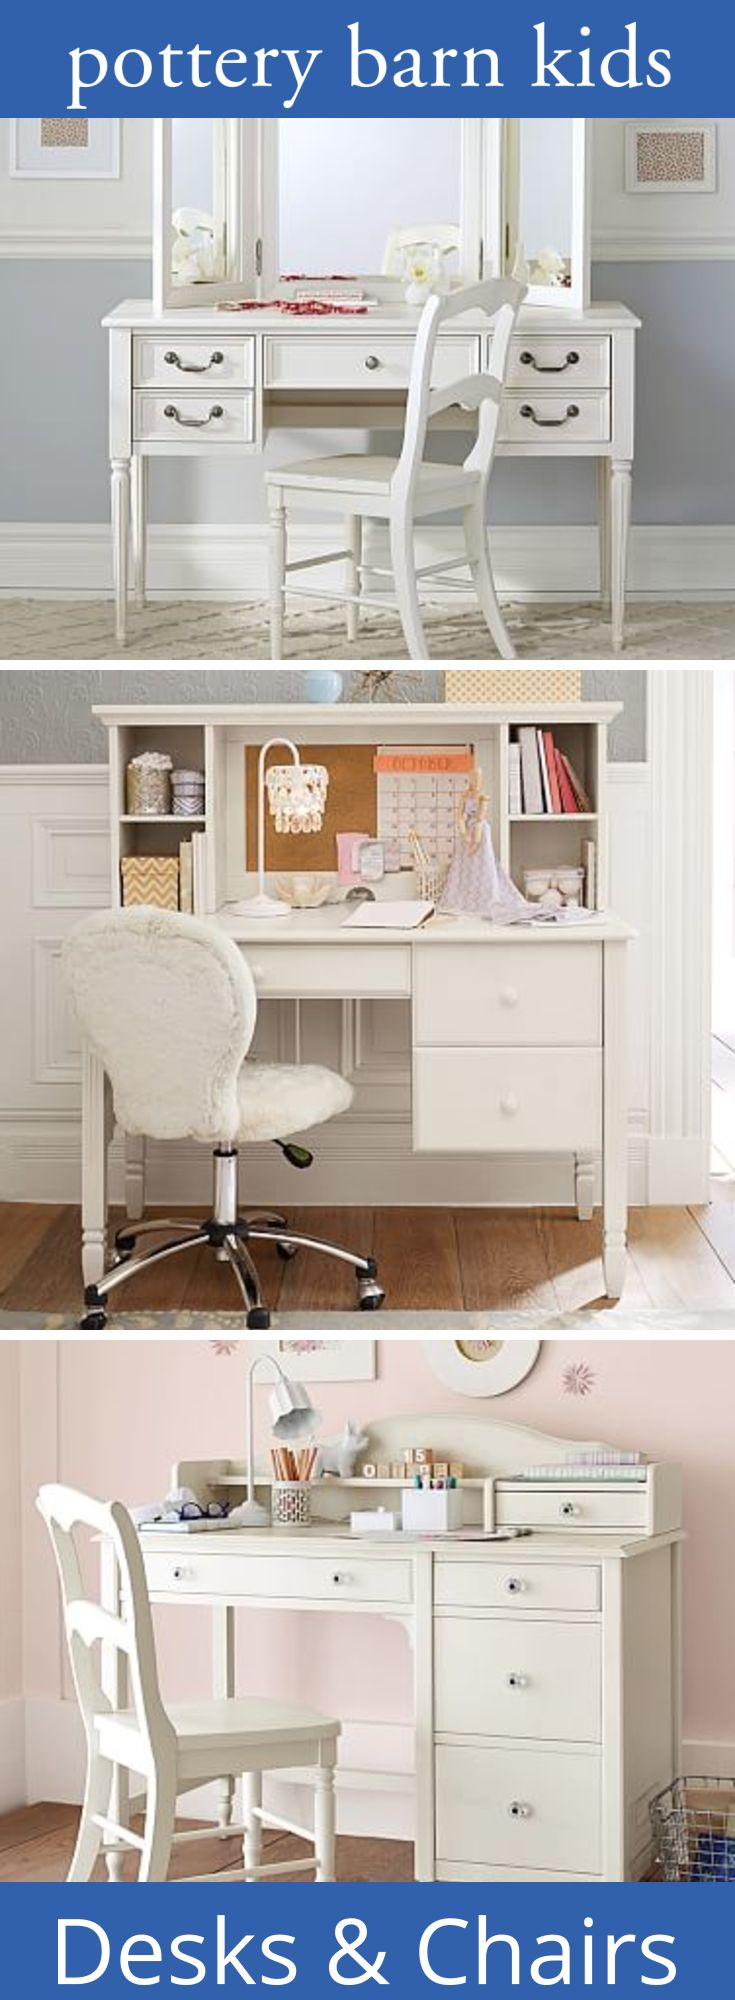 27 best Desk Ideas for the Future images on Pinterest | Home ...